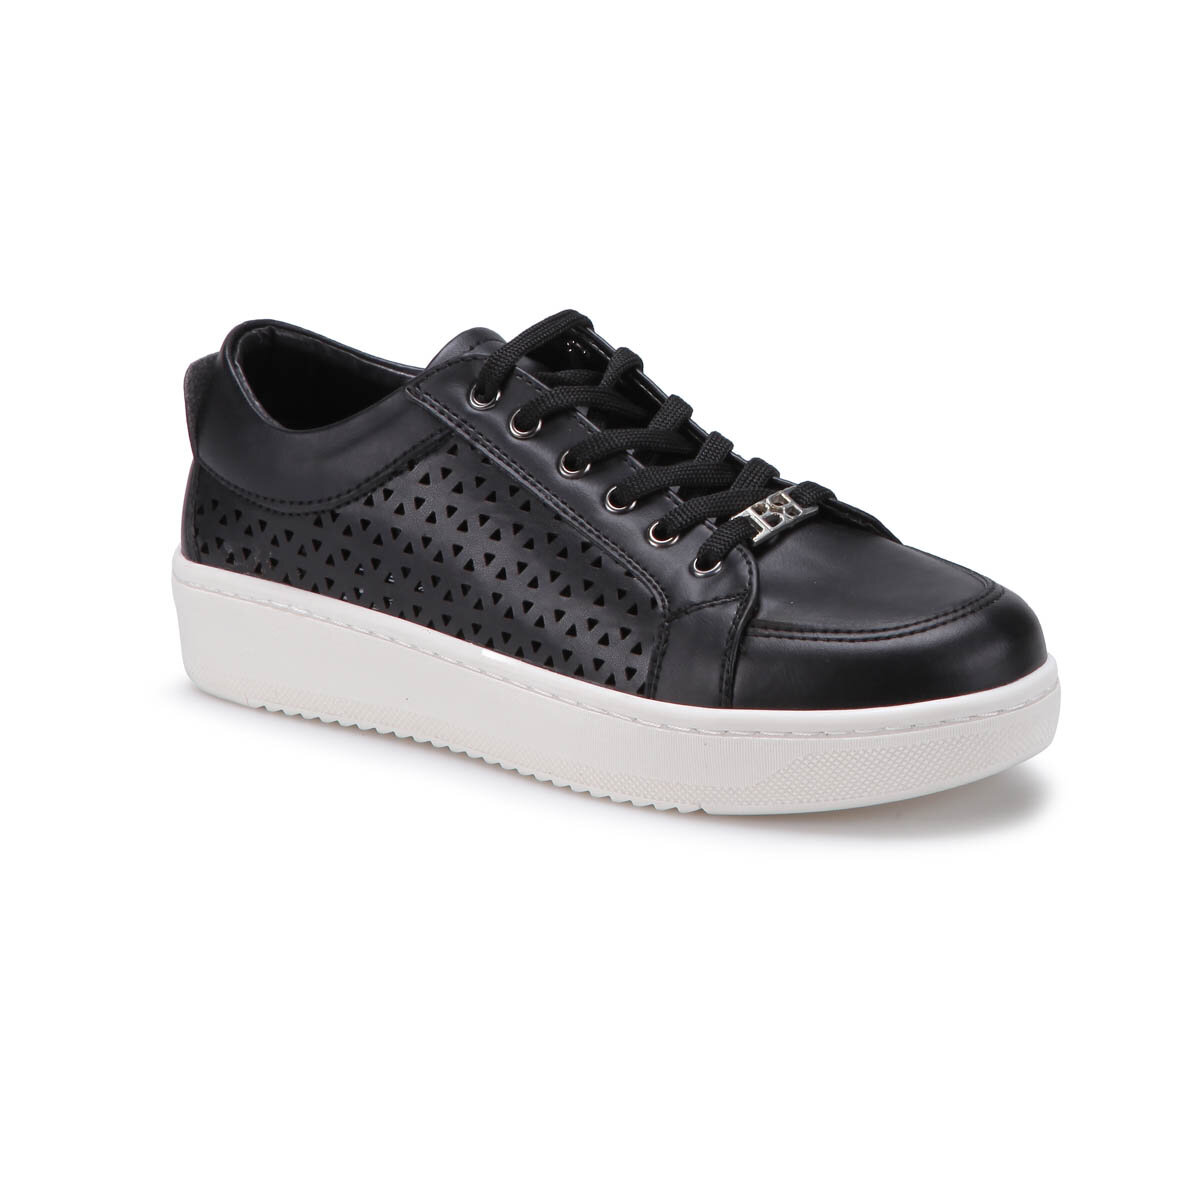 FLO S757 Black Women 'S Sneaker Shoes BUTIGO